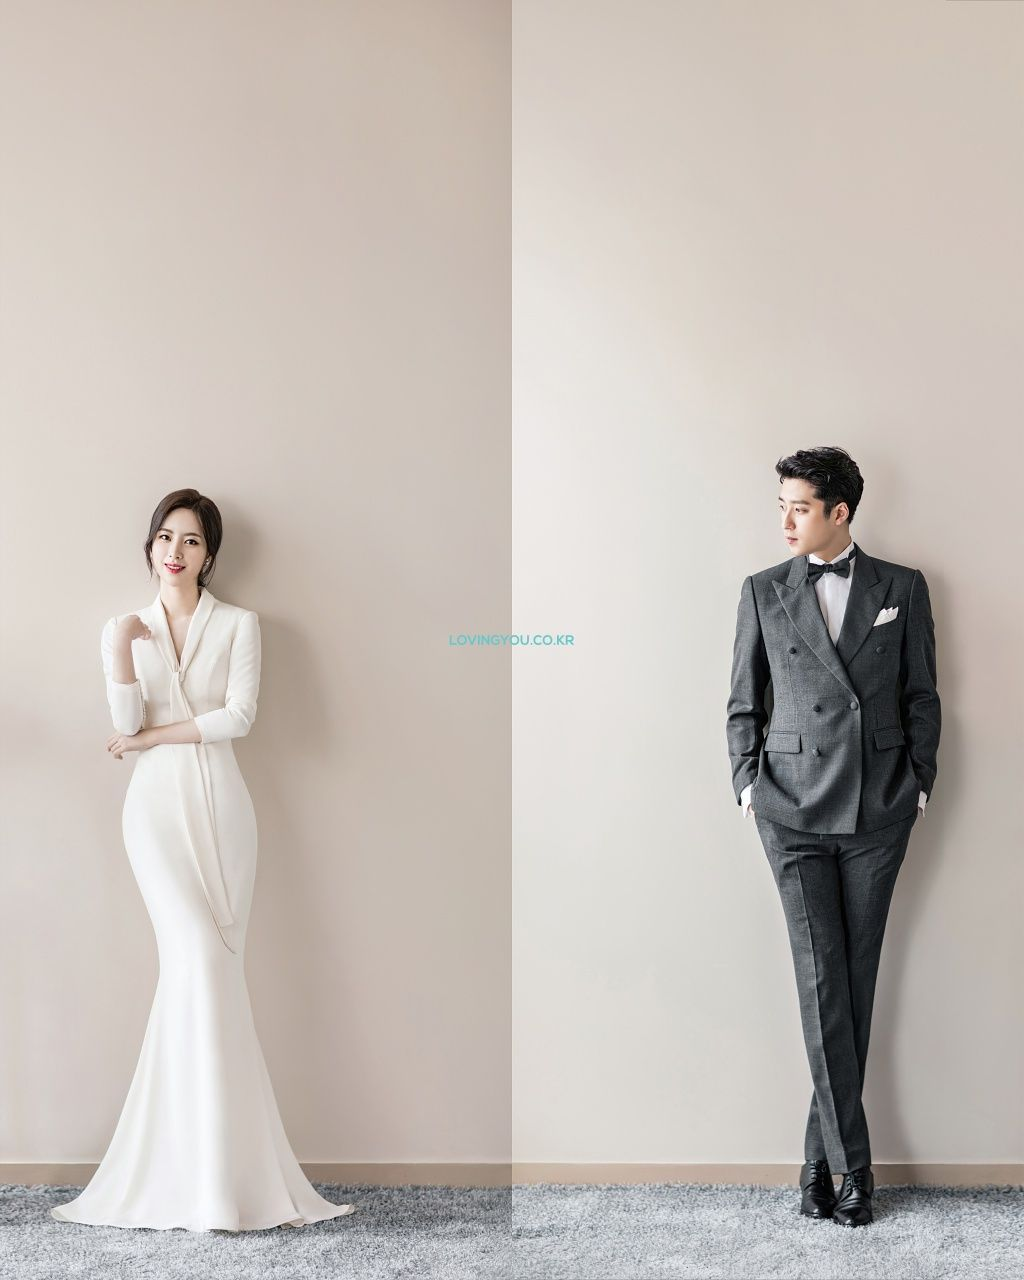 TIMETWO [AFTER MOMENT] - KOREA PRE WEDDING PHOTOSHOOT by LOVINGYOU